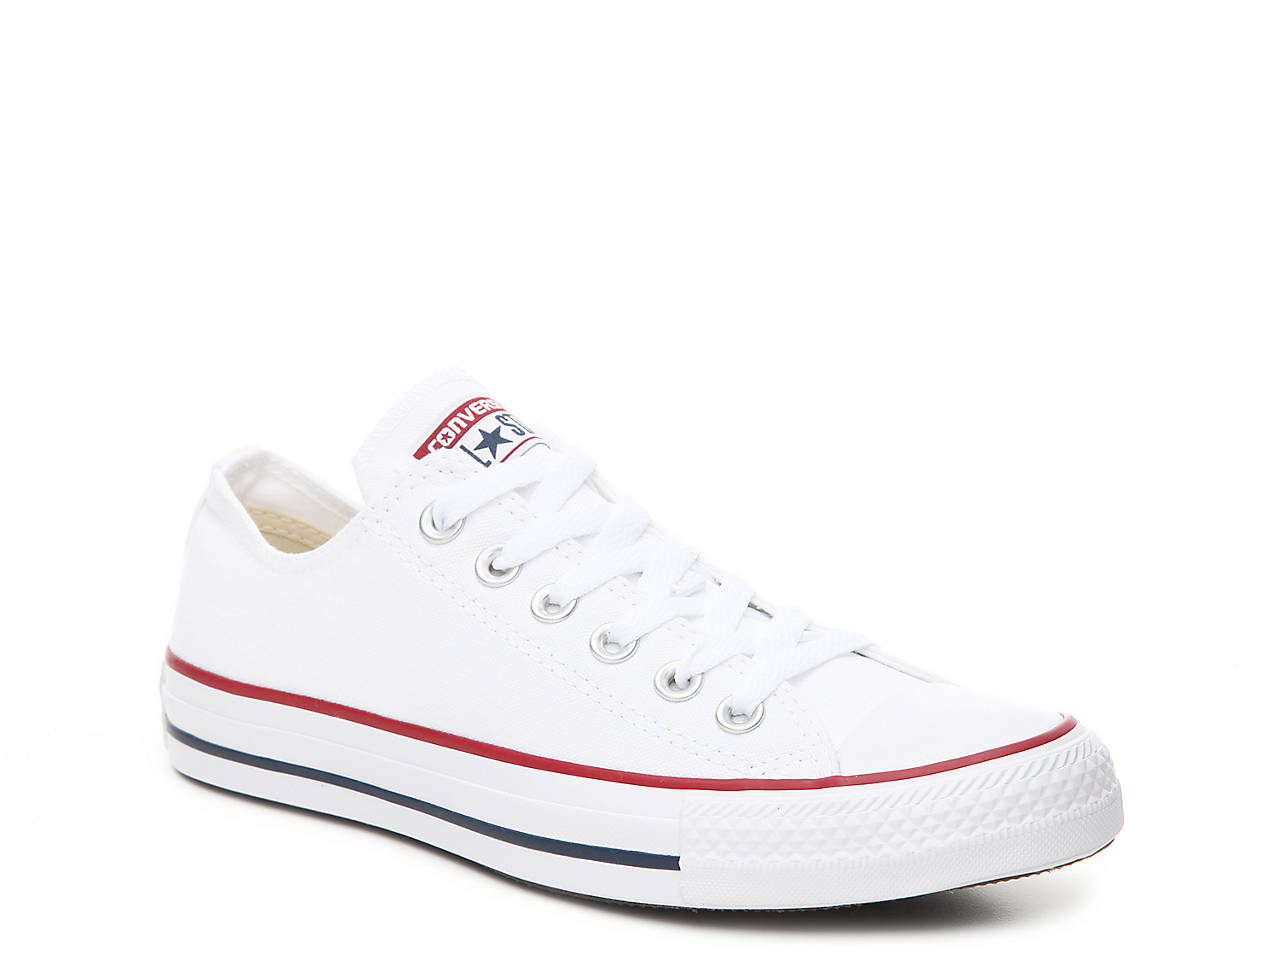 dc33d60e38ee5d Converse Chuck Taylor All Star Sneaker - Women s Women s Shoes